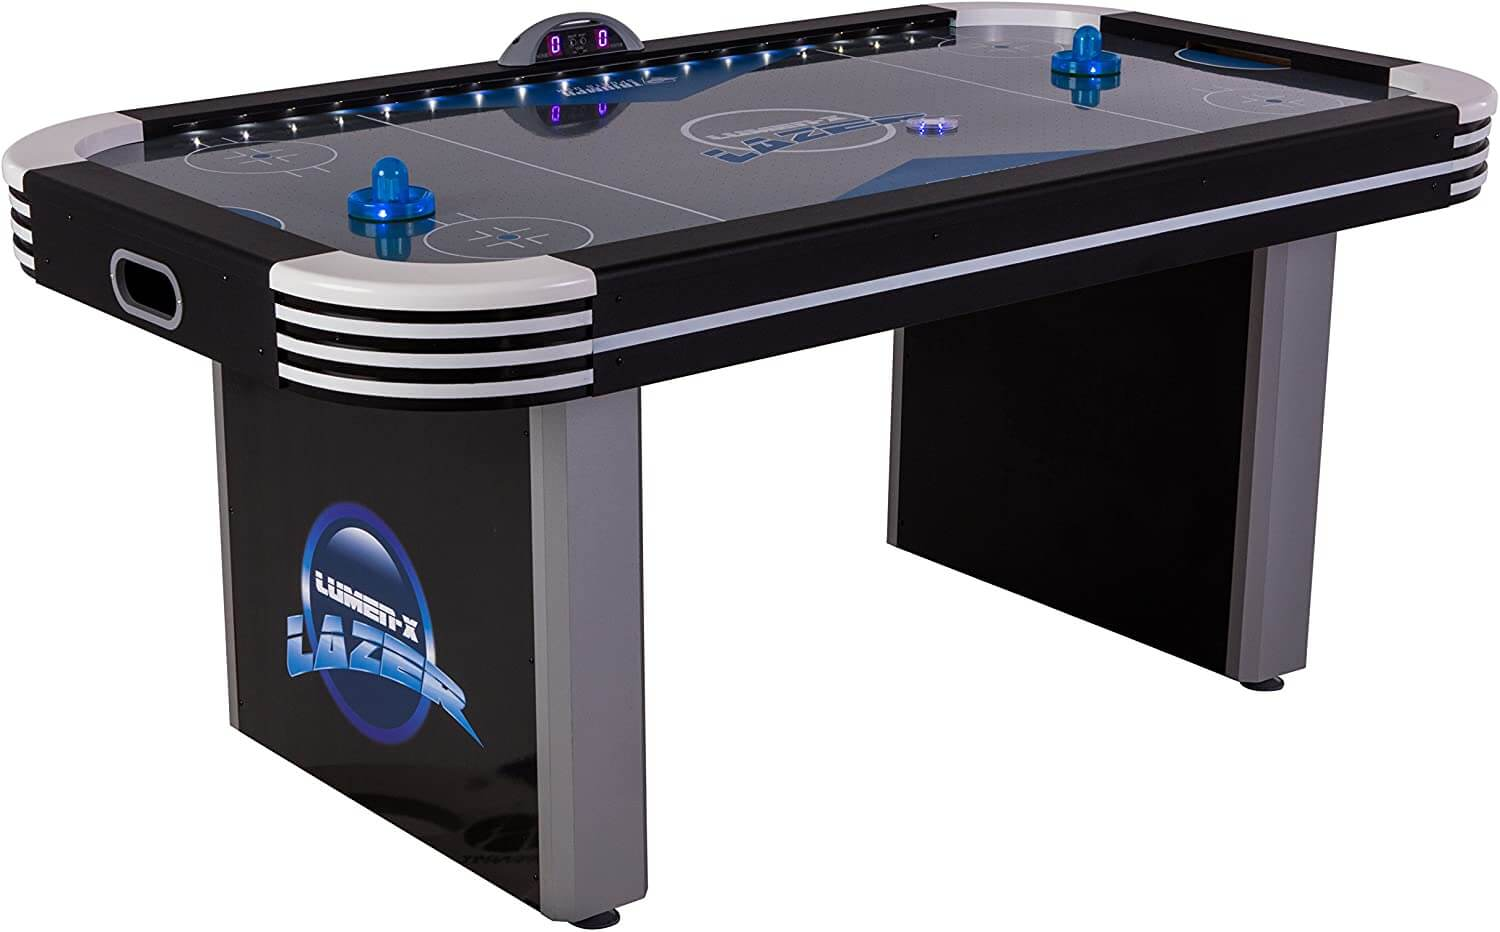 Triumph Lumen-x Lazer 6′ Air Hockey Table